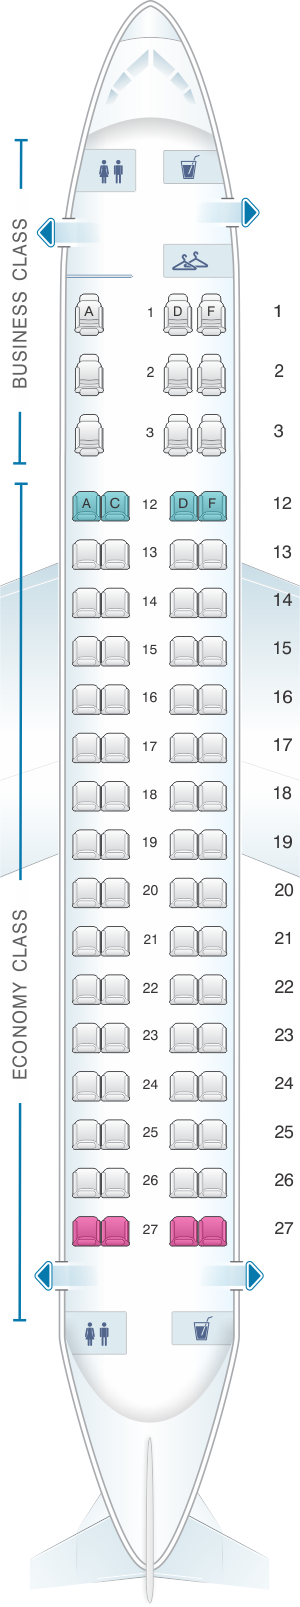 Seat map for Air Canada Embraer EMB 175